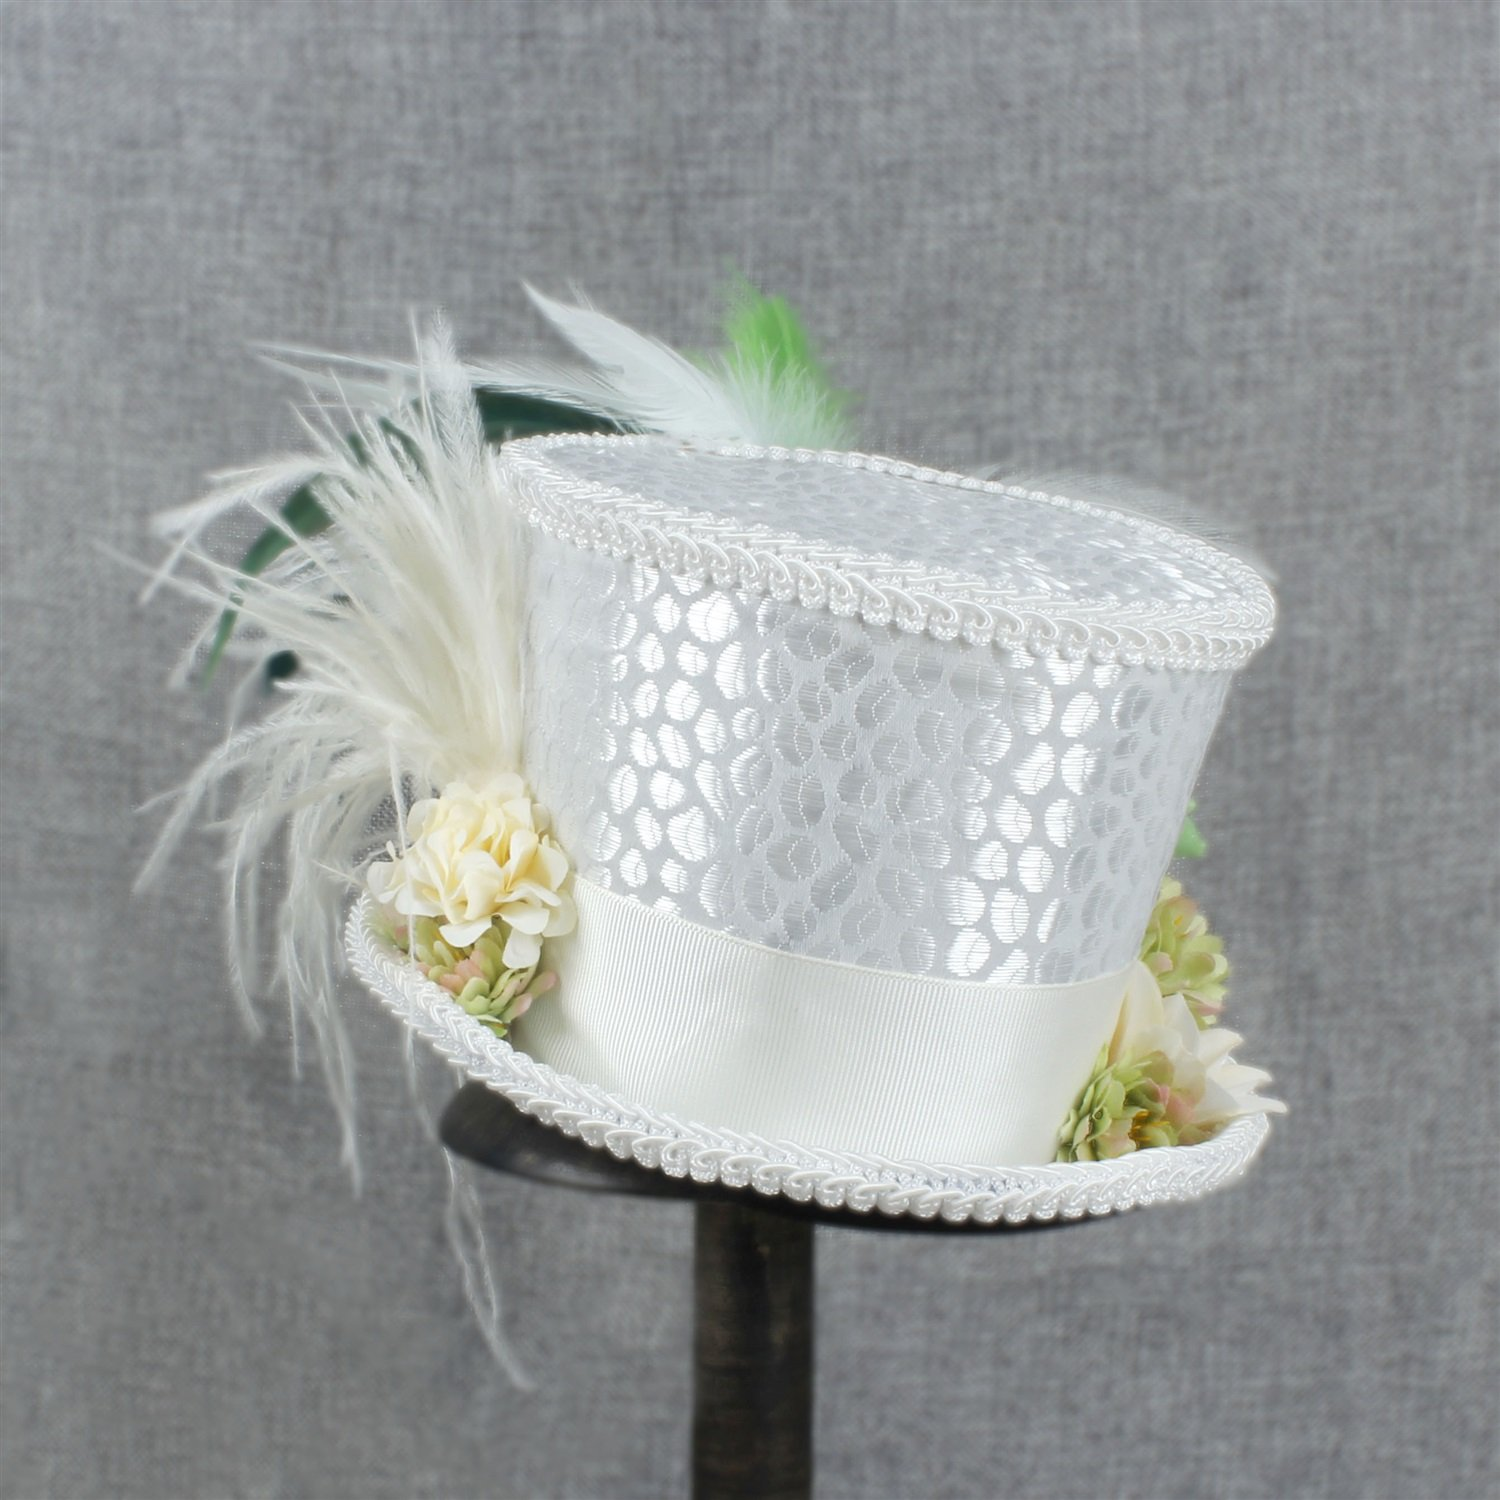 LL Women's White Mini Top Hat Tea Hat Mad Hatter Tea hat, Bridal Hat, Kentucky Derby hat (Color : White, Size : 25-30cm) by LL (Image #3)